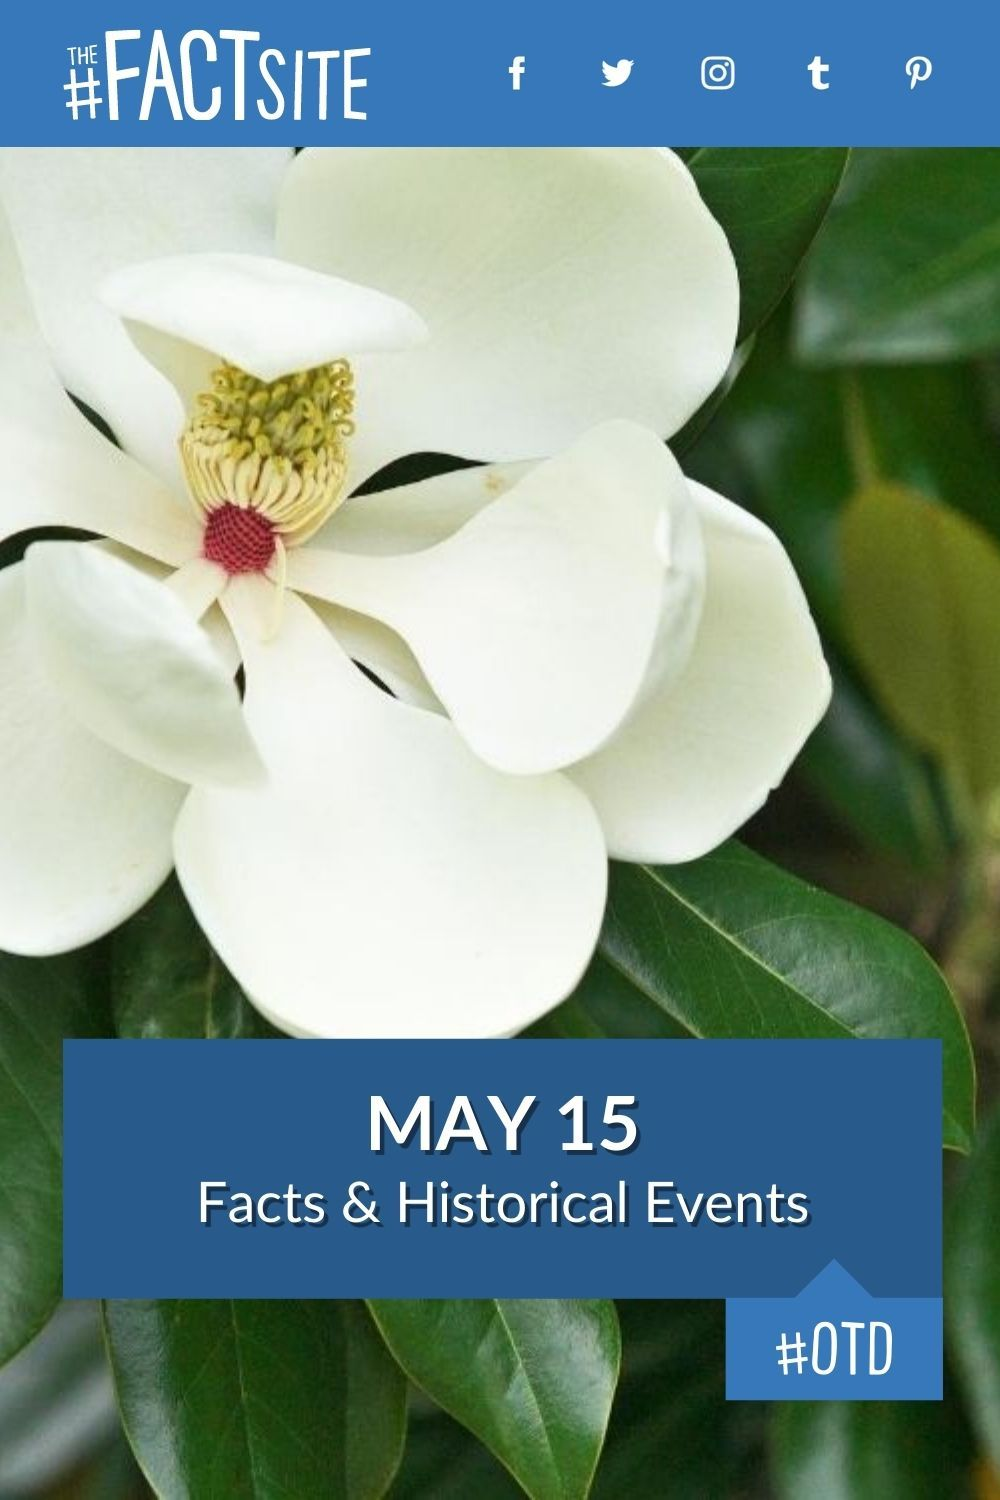 Facts & Historic Events That Happened on May 15